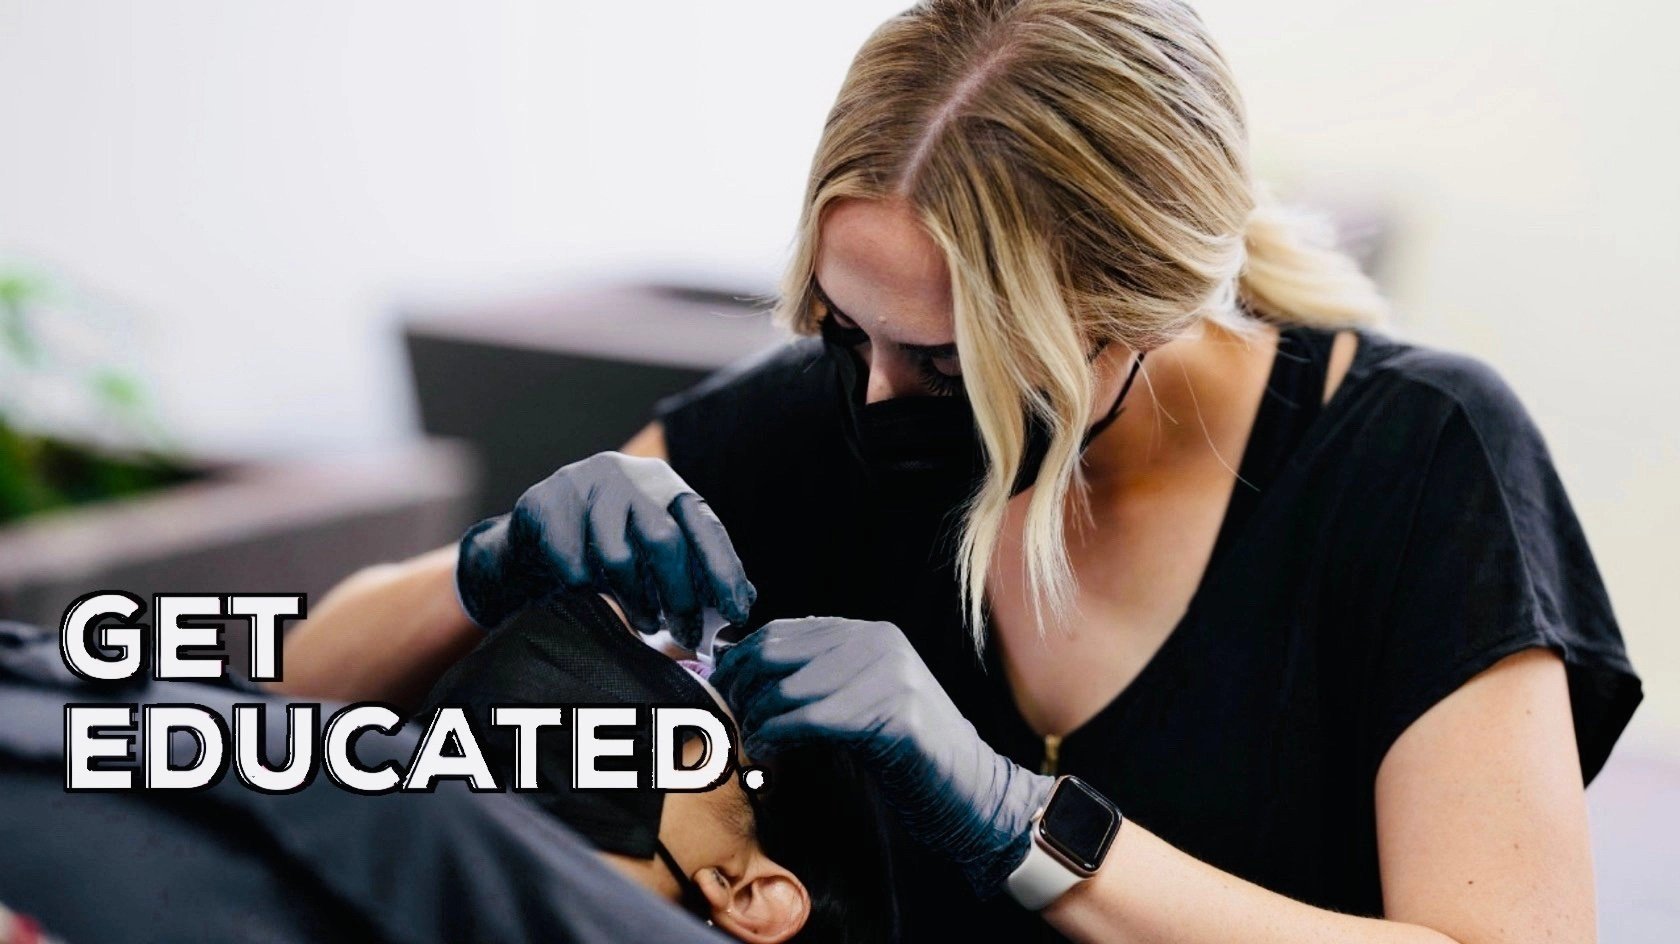 Director of Education Banner - Lash Lift Store Home Page